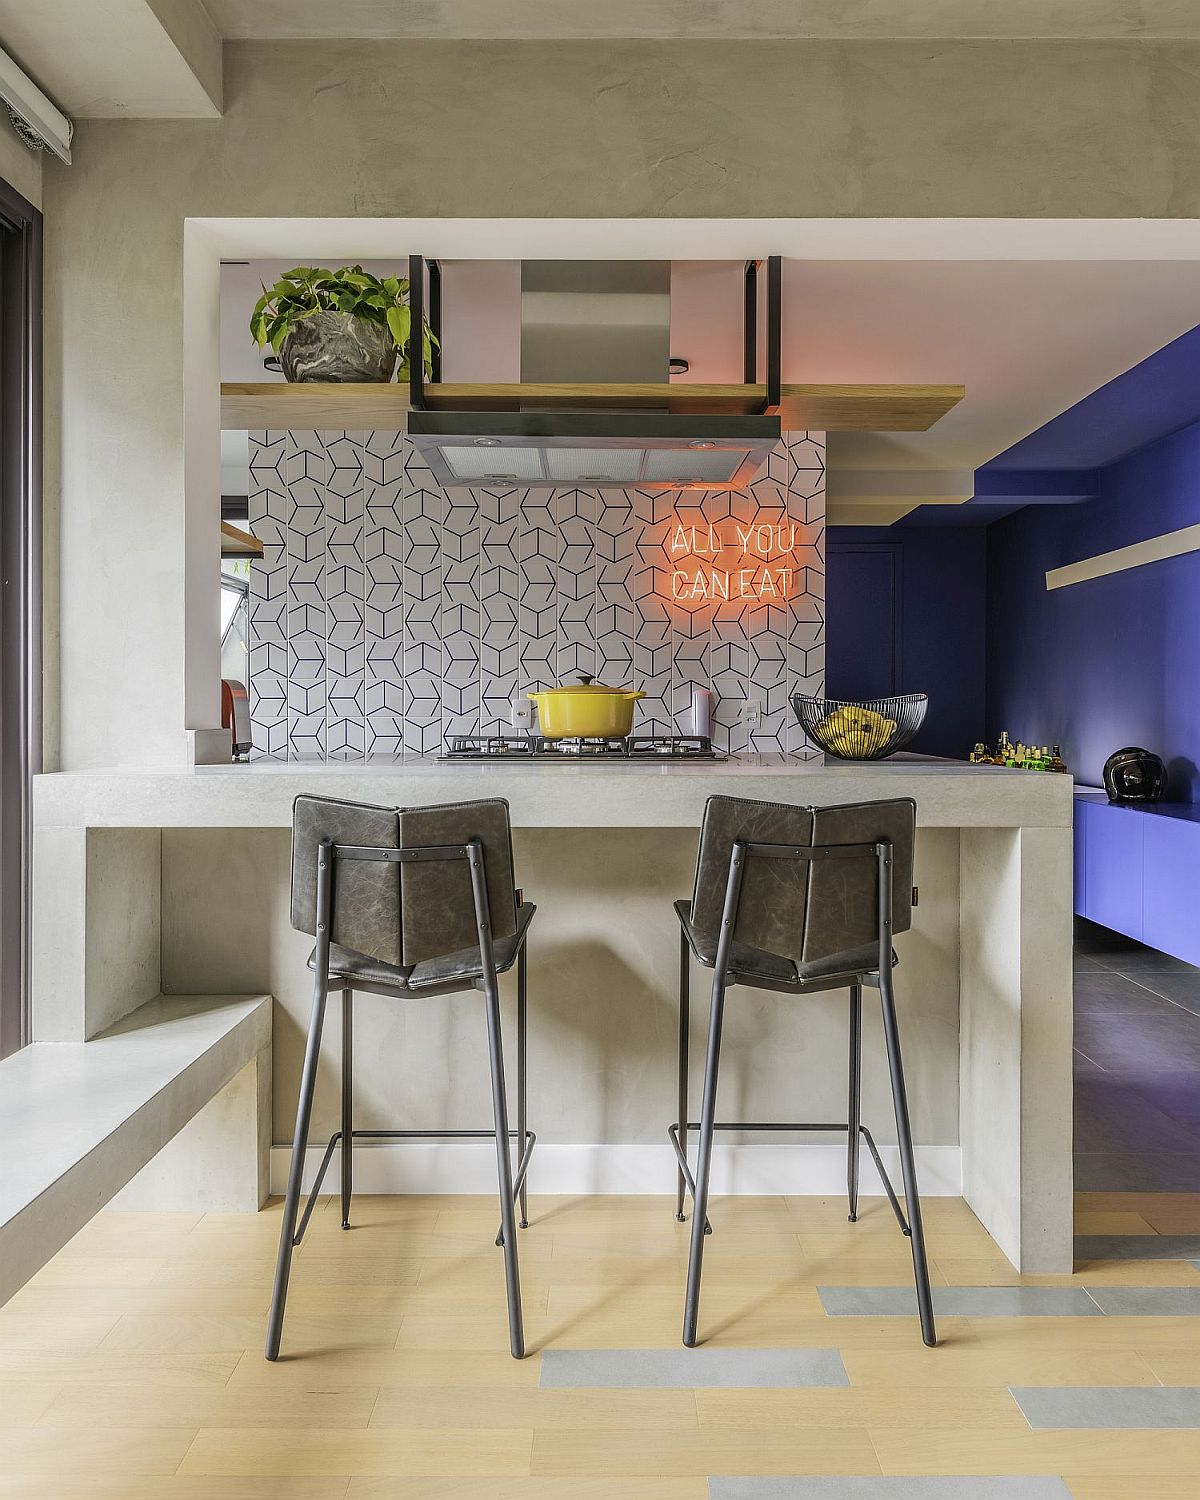 Neon sign brings both color and pizazz to the small apartment kitchen in Brazil